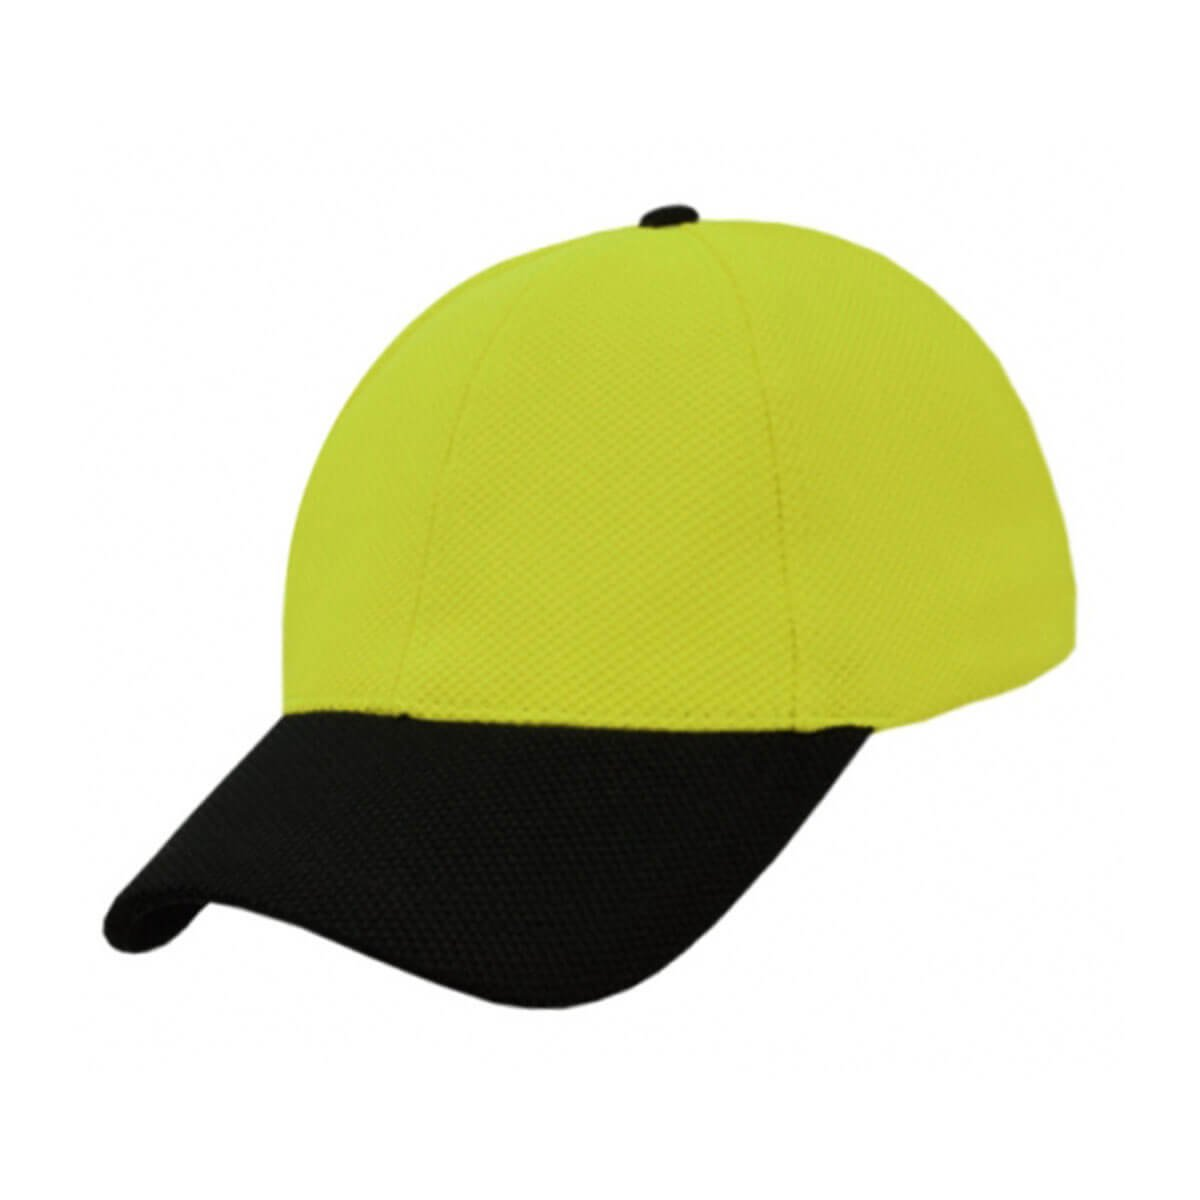 PQ Mesh Plain Sandwich Design Cap-Fluro Yellow / Black